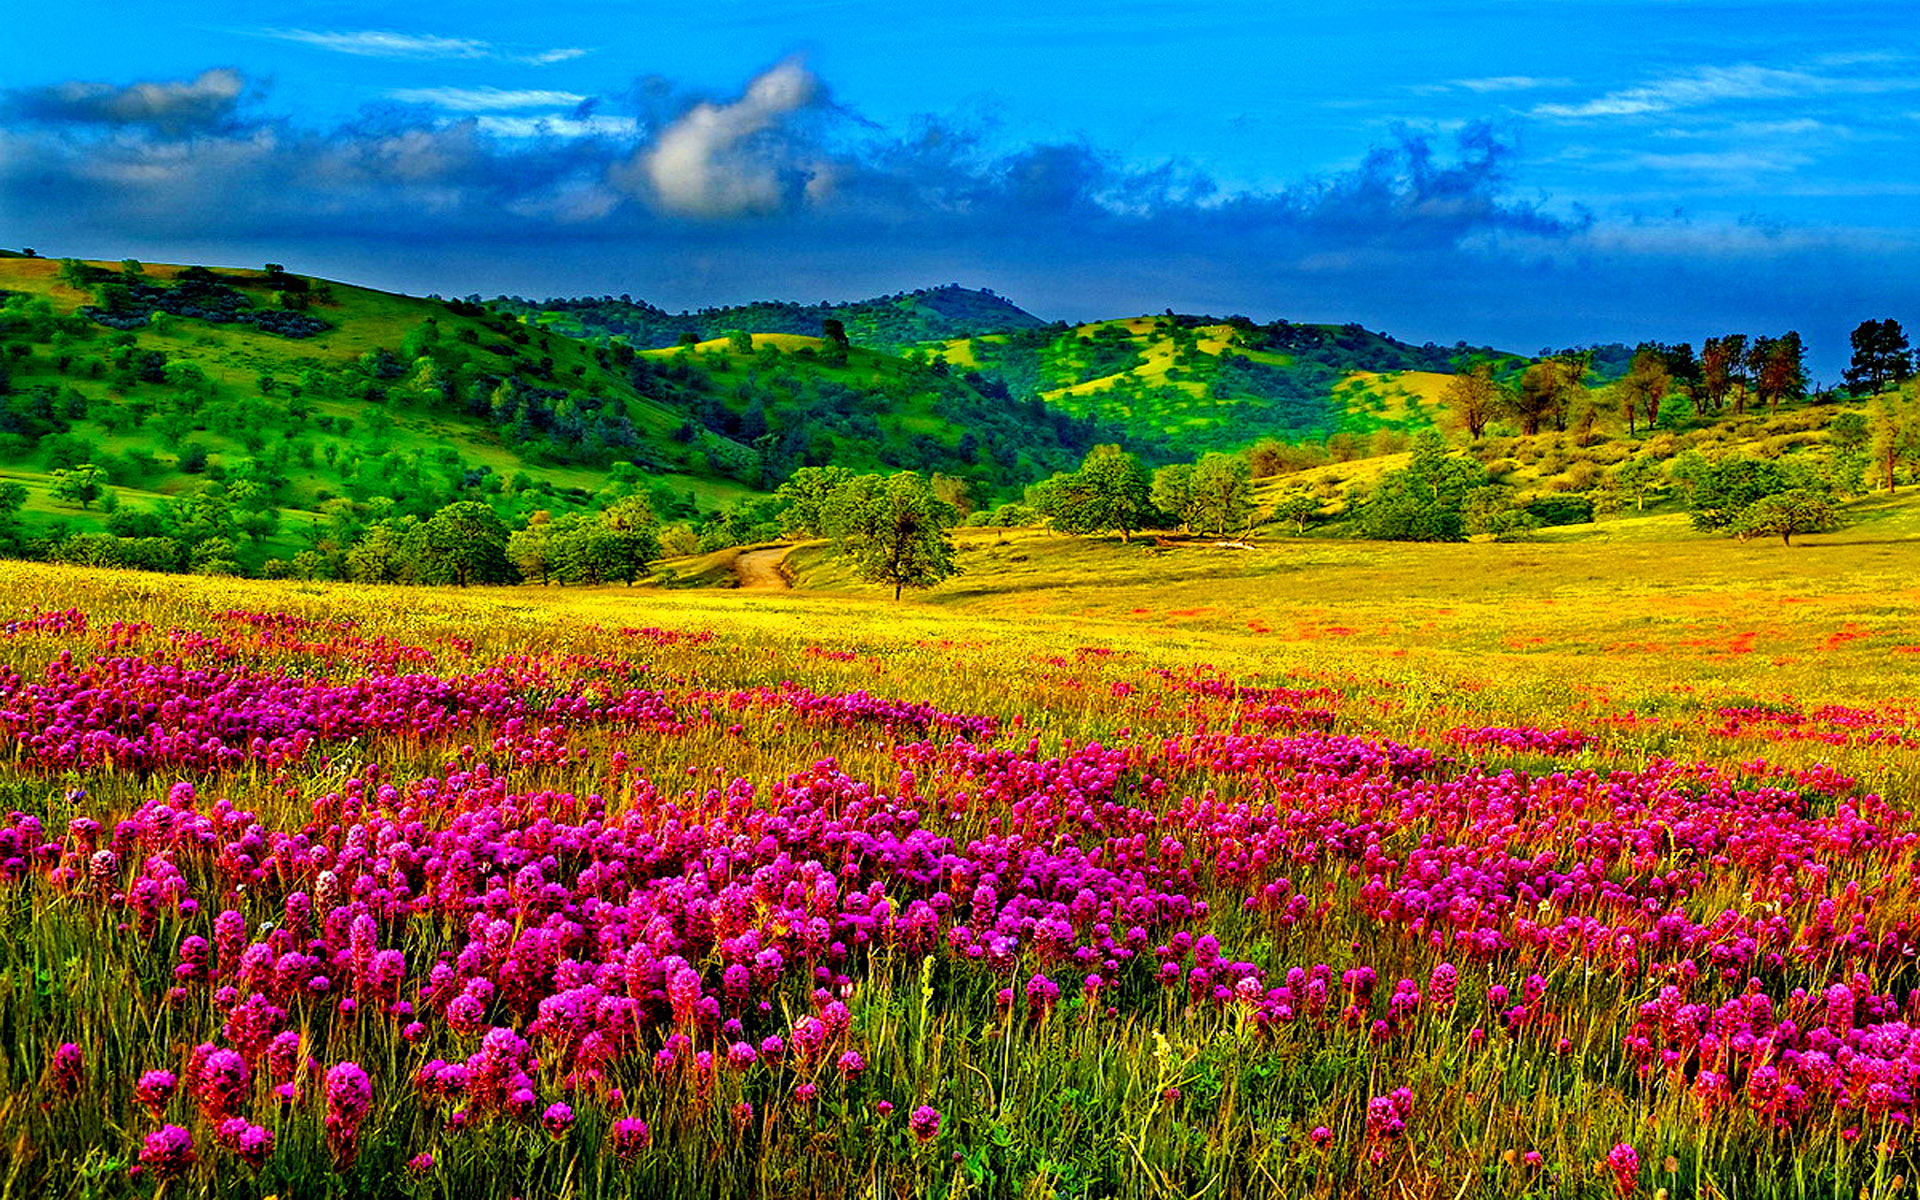 Large Fall Desktop Wallpaper Meadow With Purple Flowers Hills With Trees And Green